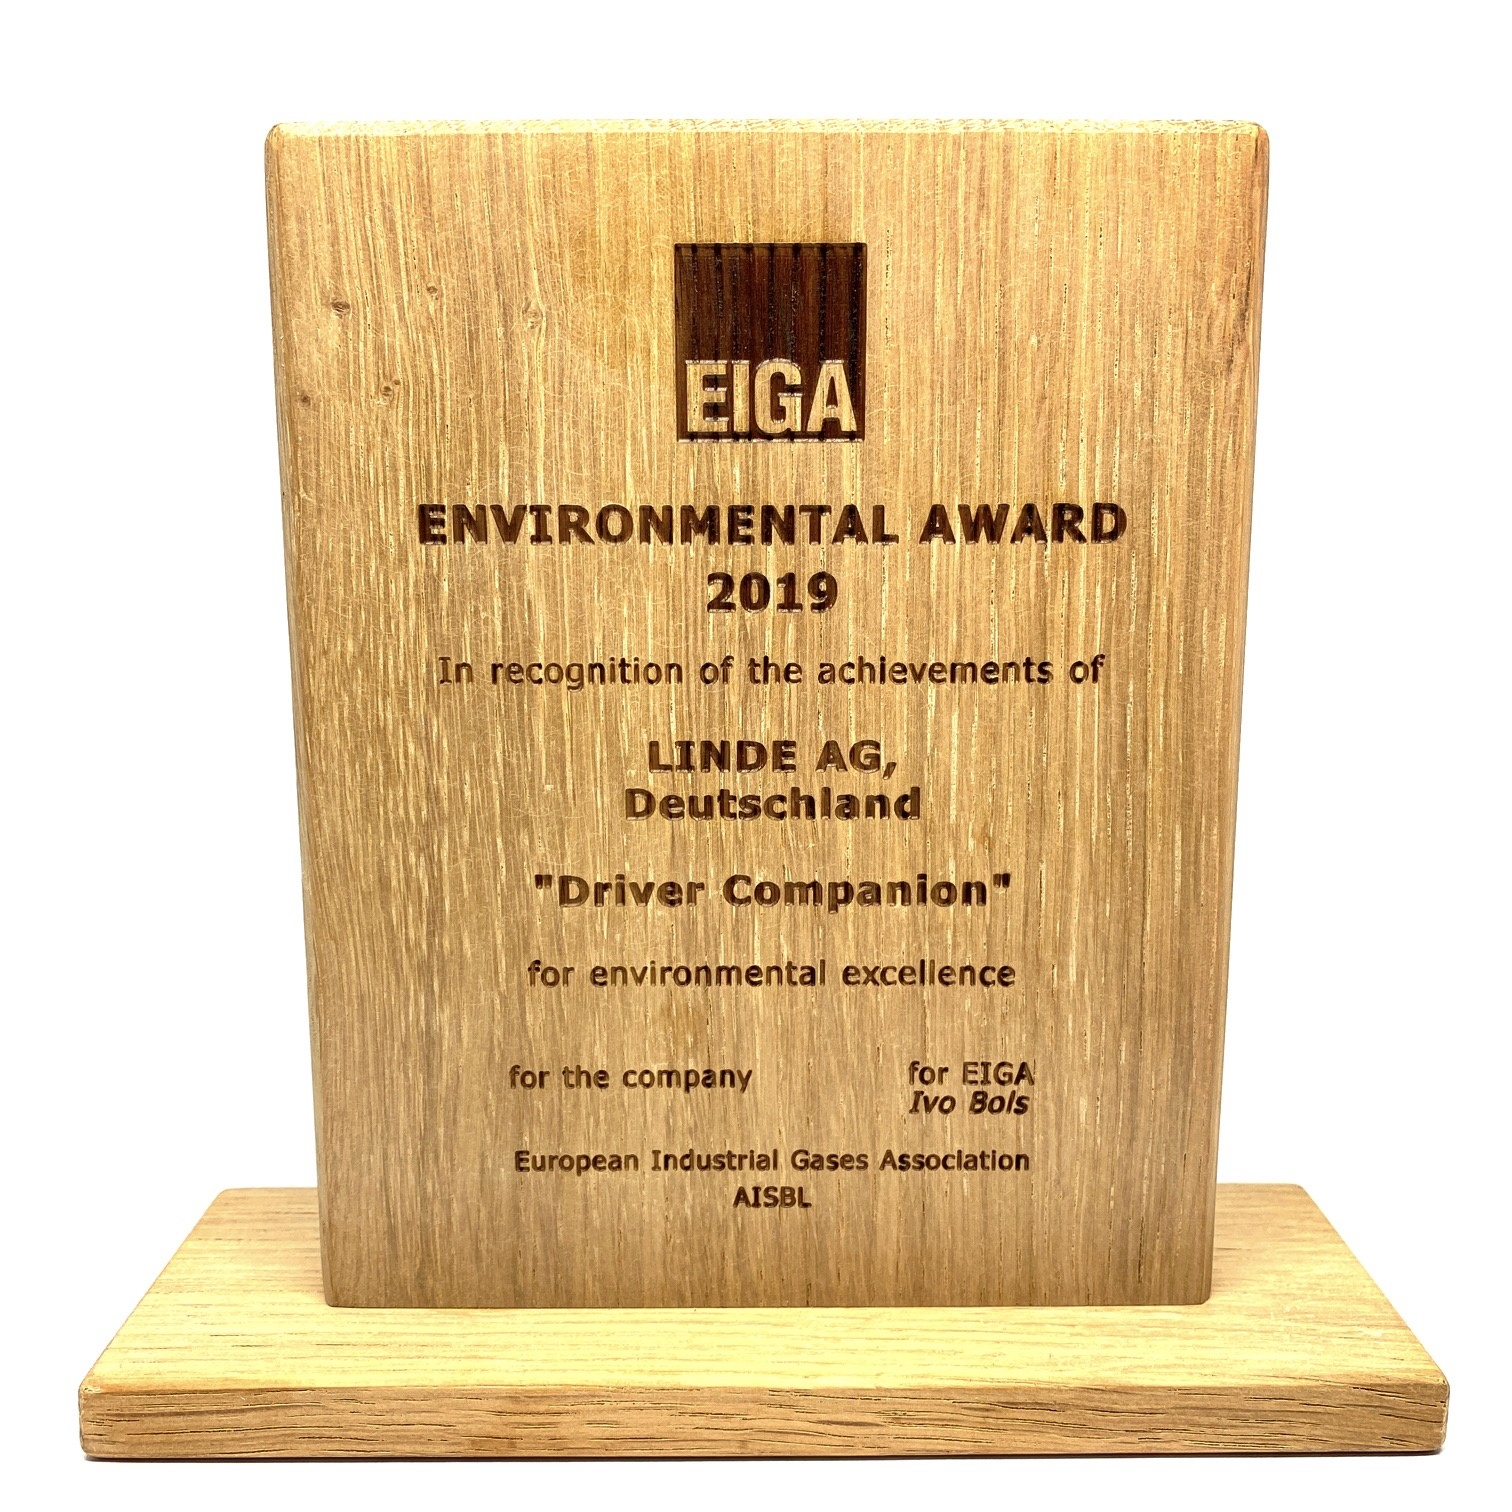 Customized wooden award with laser engraving (150 x 120 x 20 mm)